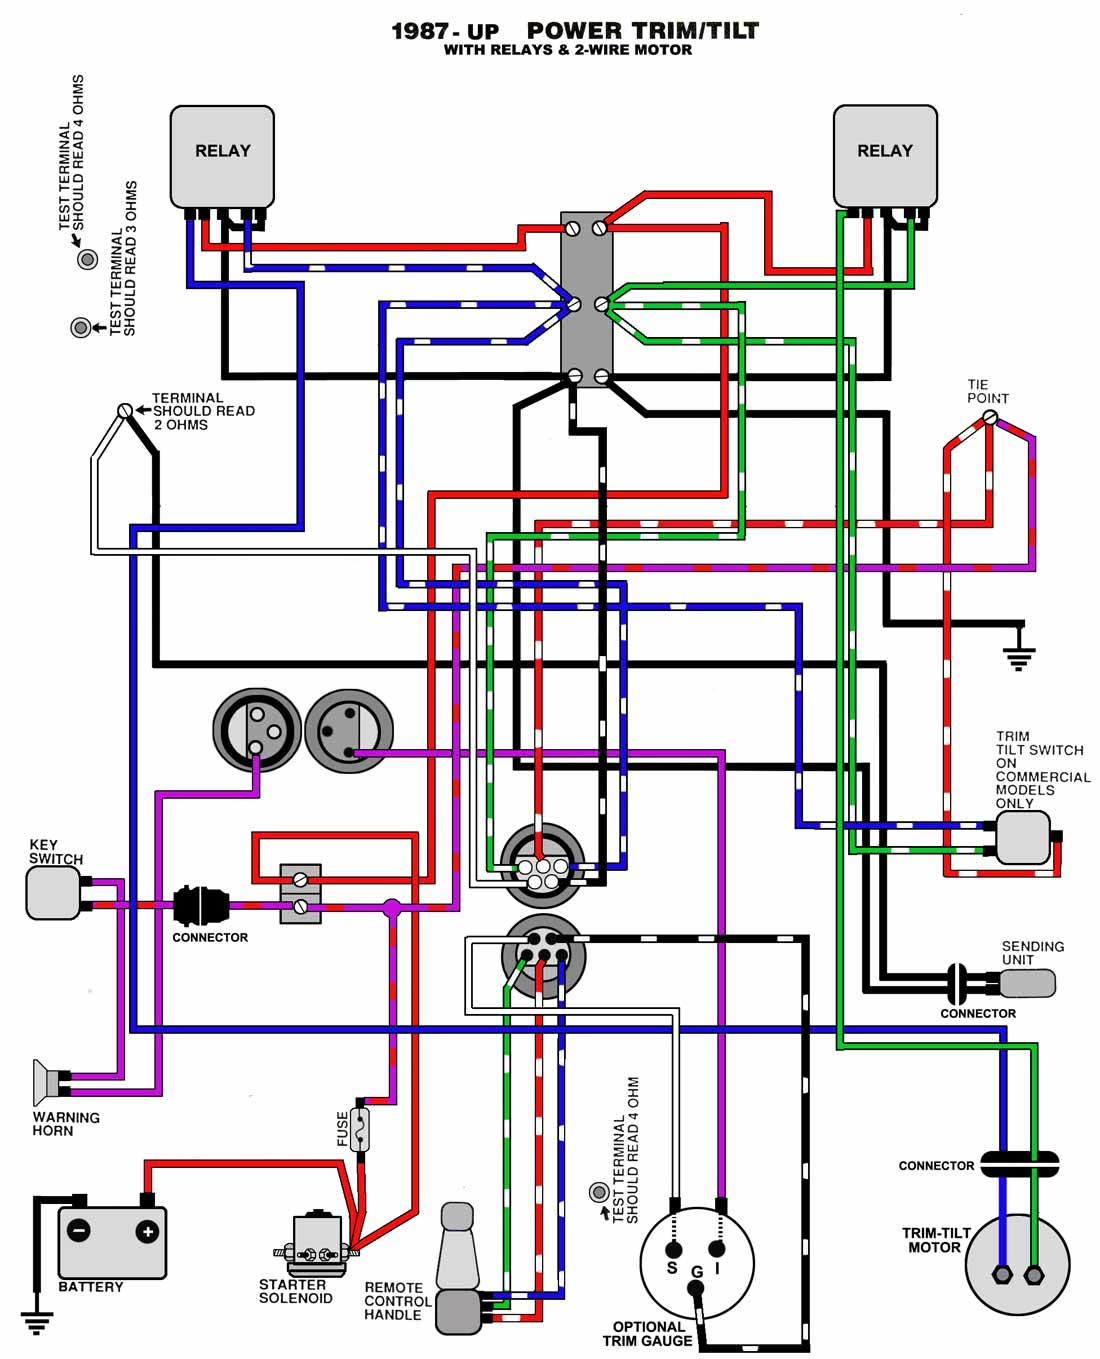 TnT_87_UP mastertech marine evinrude johnson outboard wiring diagrams evinrude key switch wiring diagram at suagrazia.org